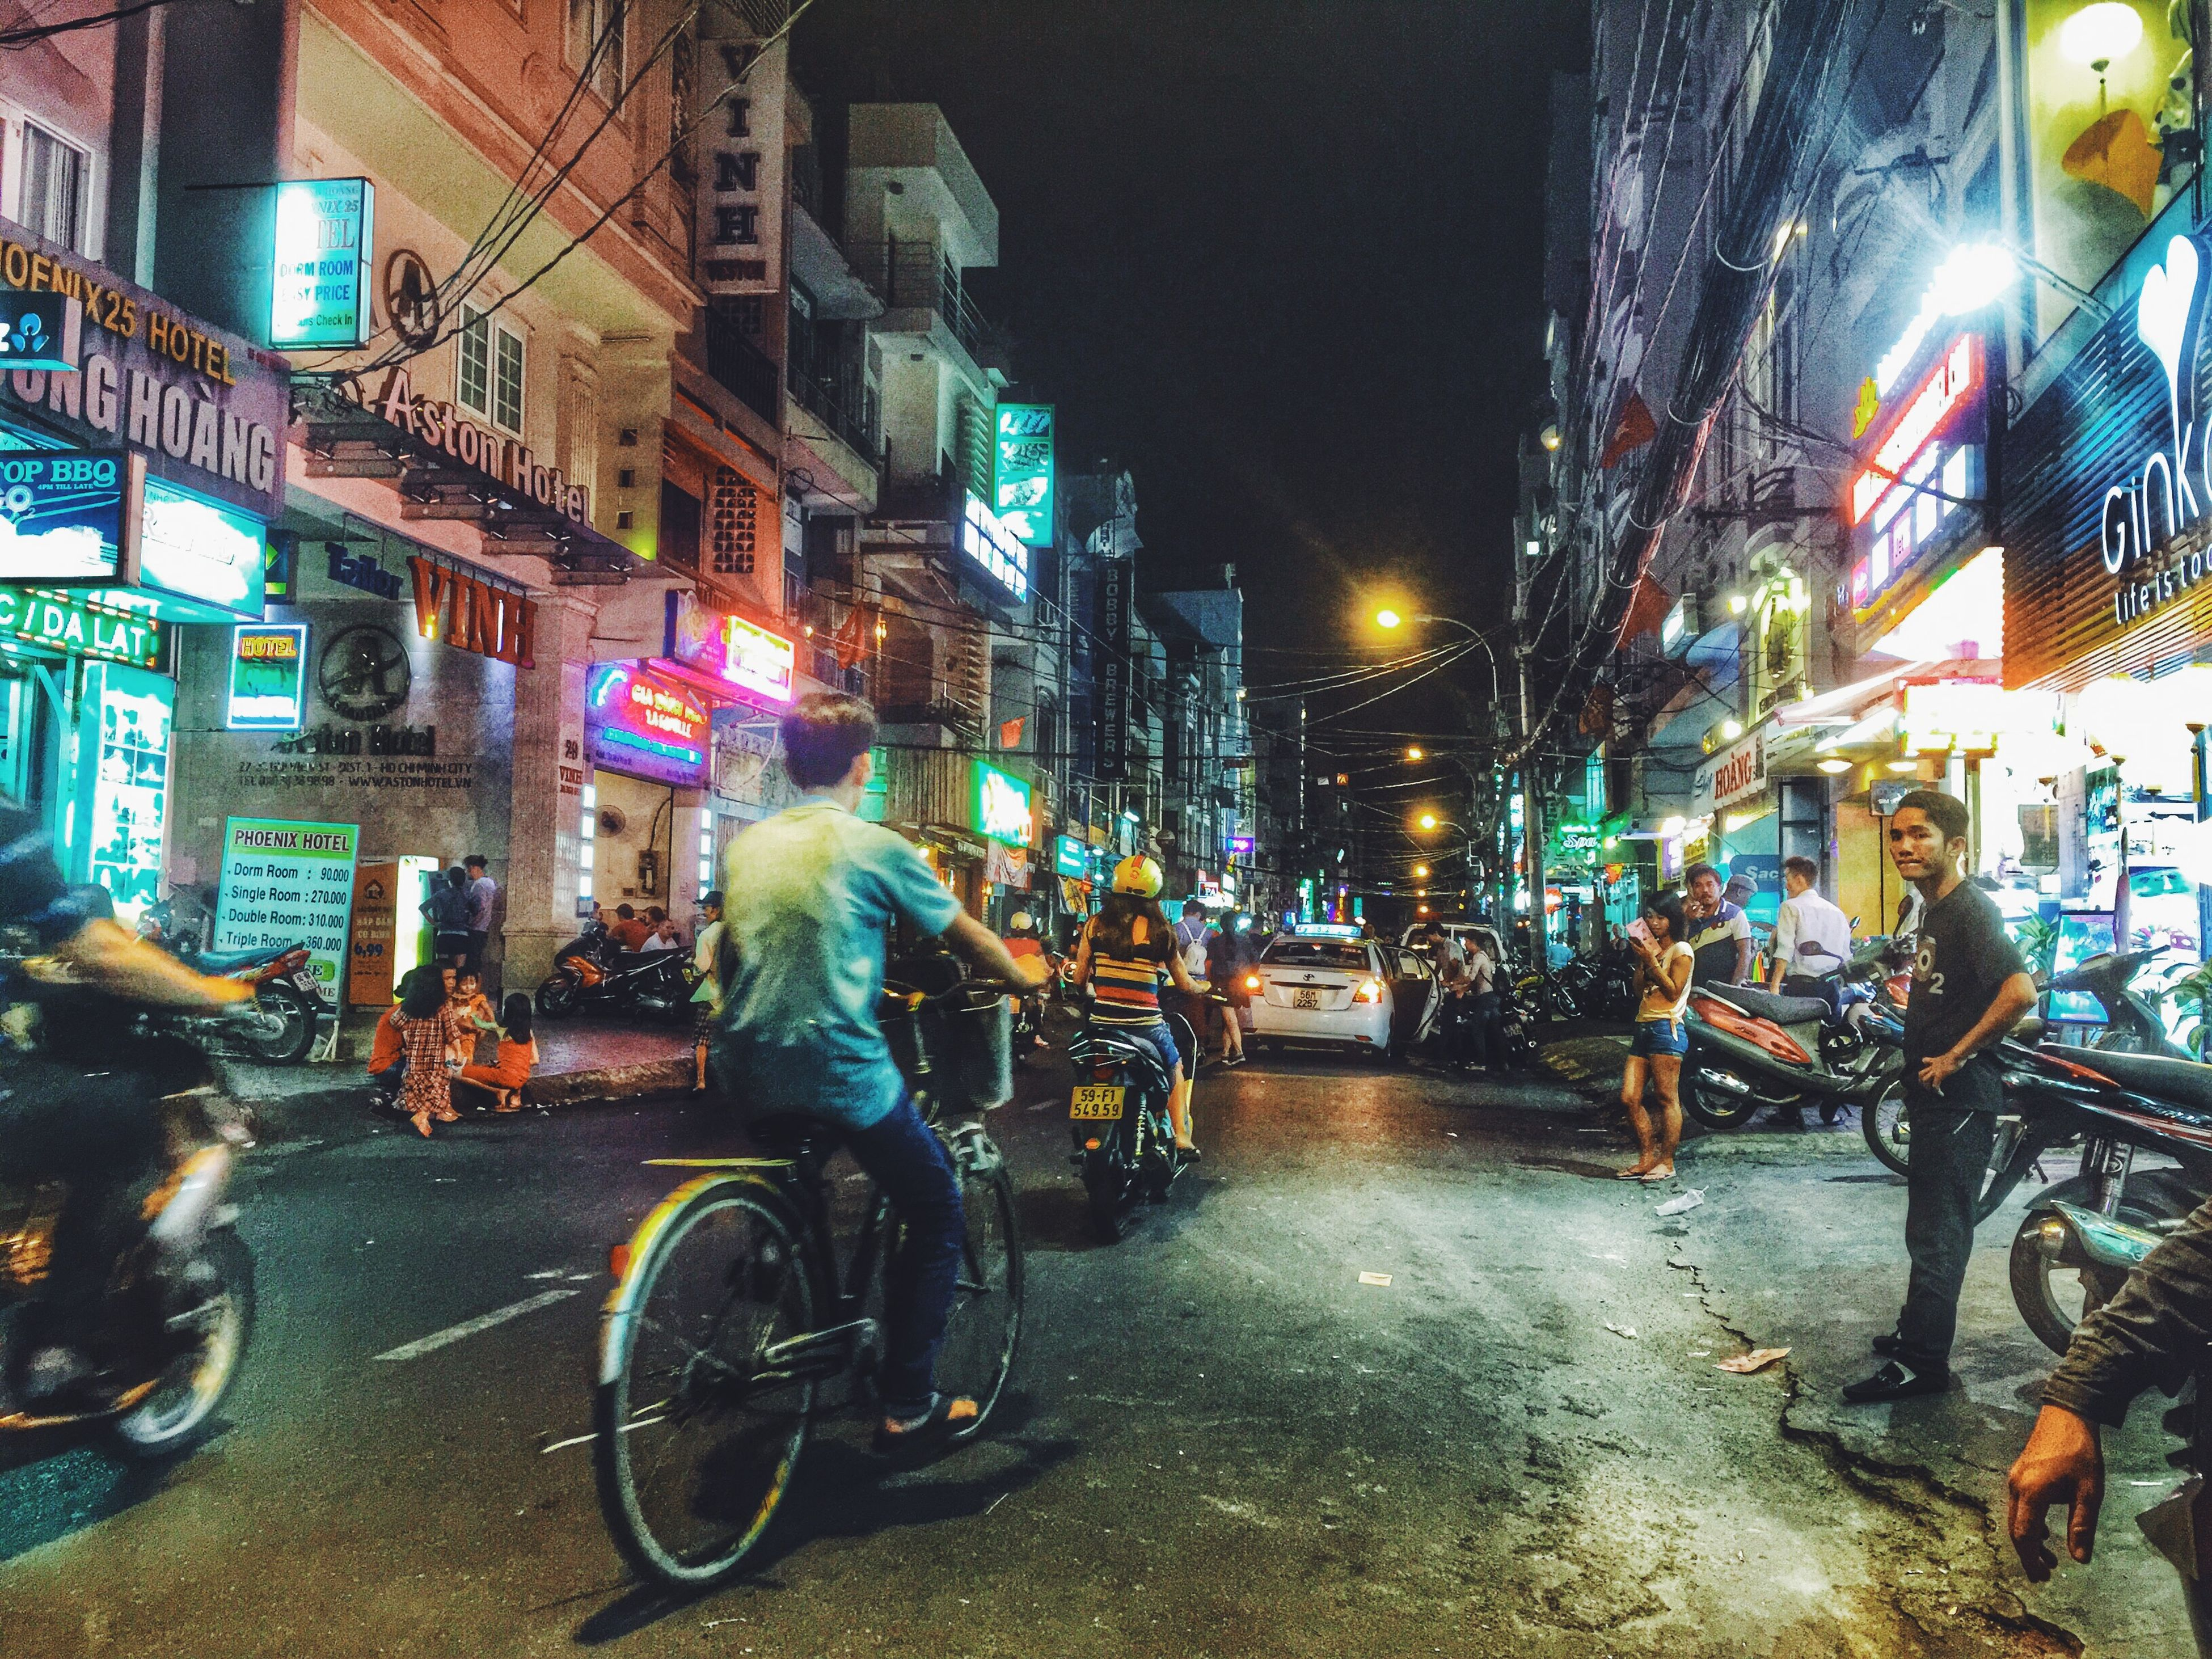 bicycle, illuminated, night, building exterior, transportation, land vehicle, built structure, architecture, mode of transport, street, city, parking, parked, stationary, city life, street light, city street, car, lighting equipment, building